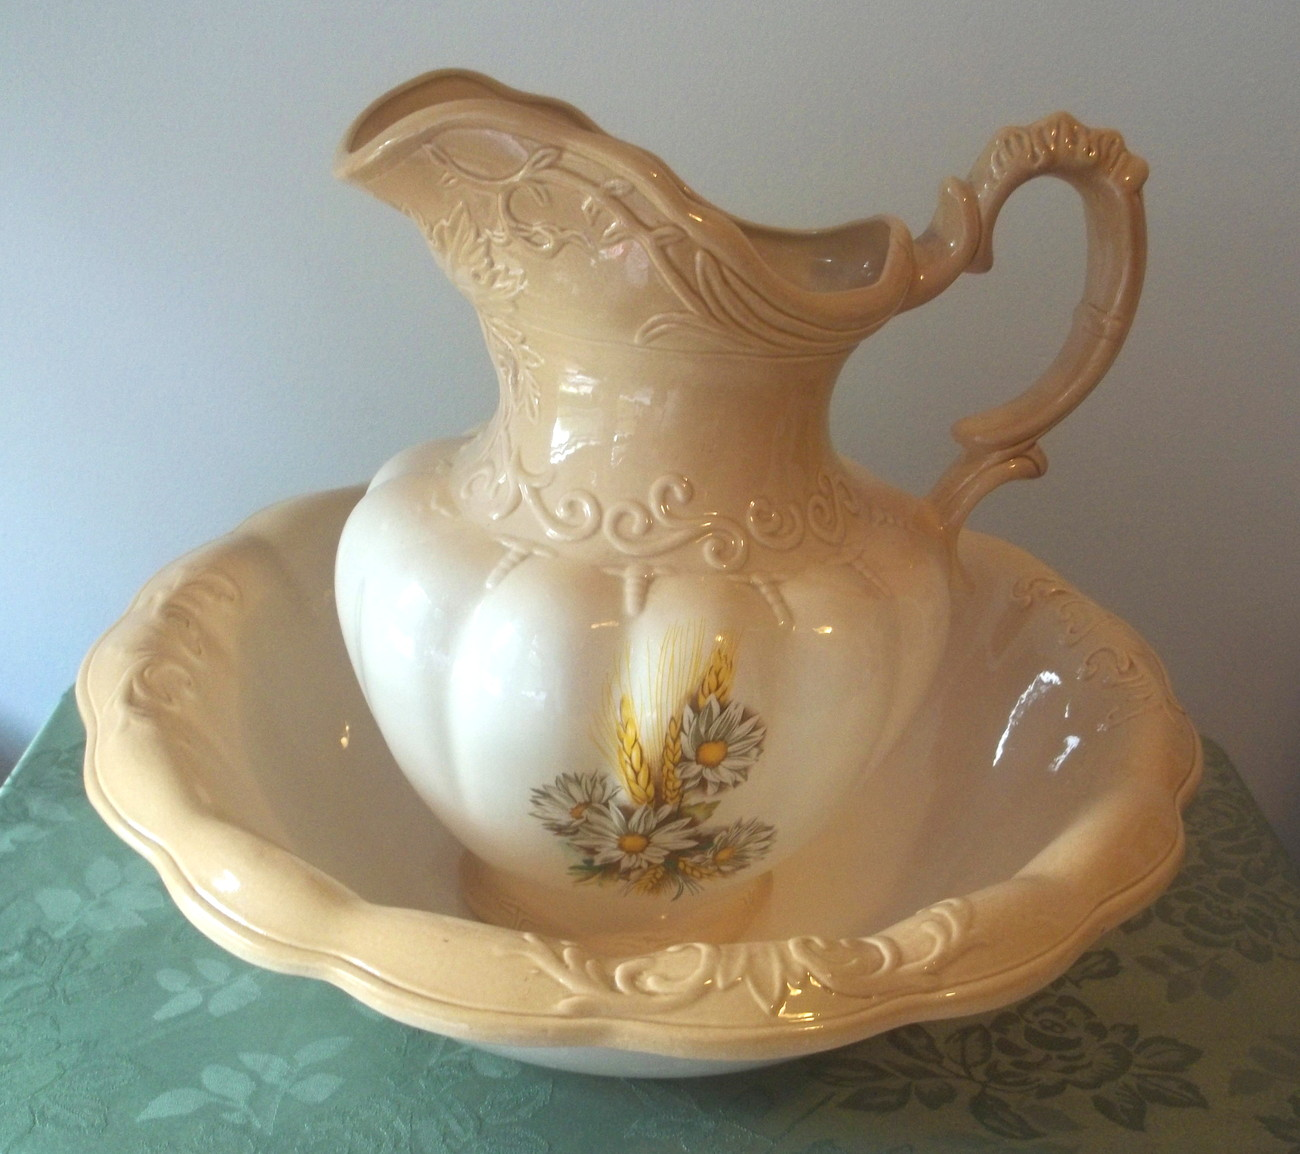 wash bowl and pitcher set daisies and wheat ironstone england 1890 creme latte decorative. Black Bedroom Furniture Sets. Home Design Ideas